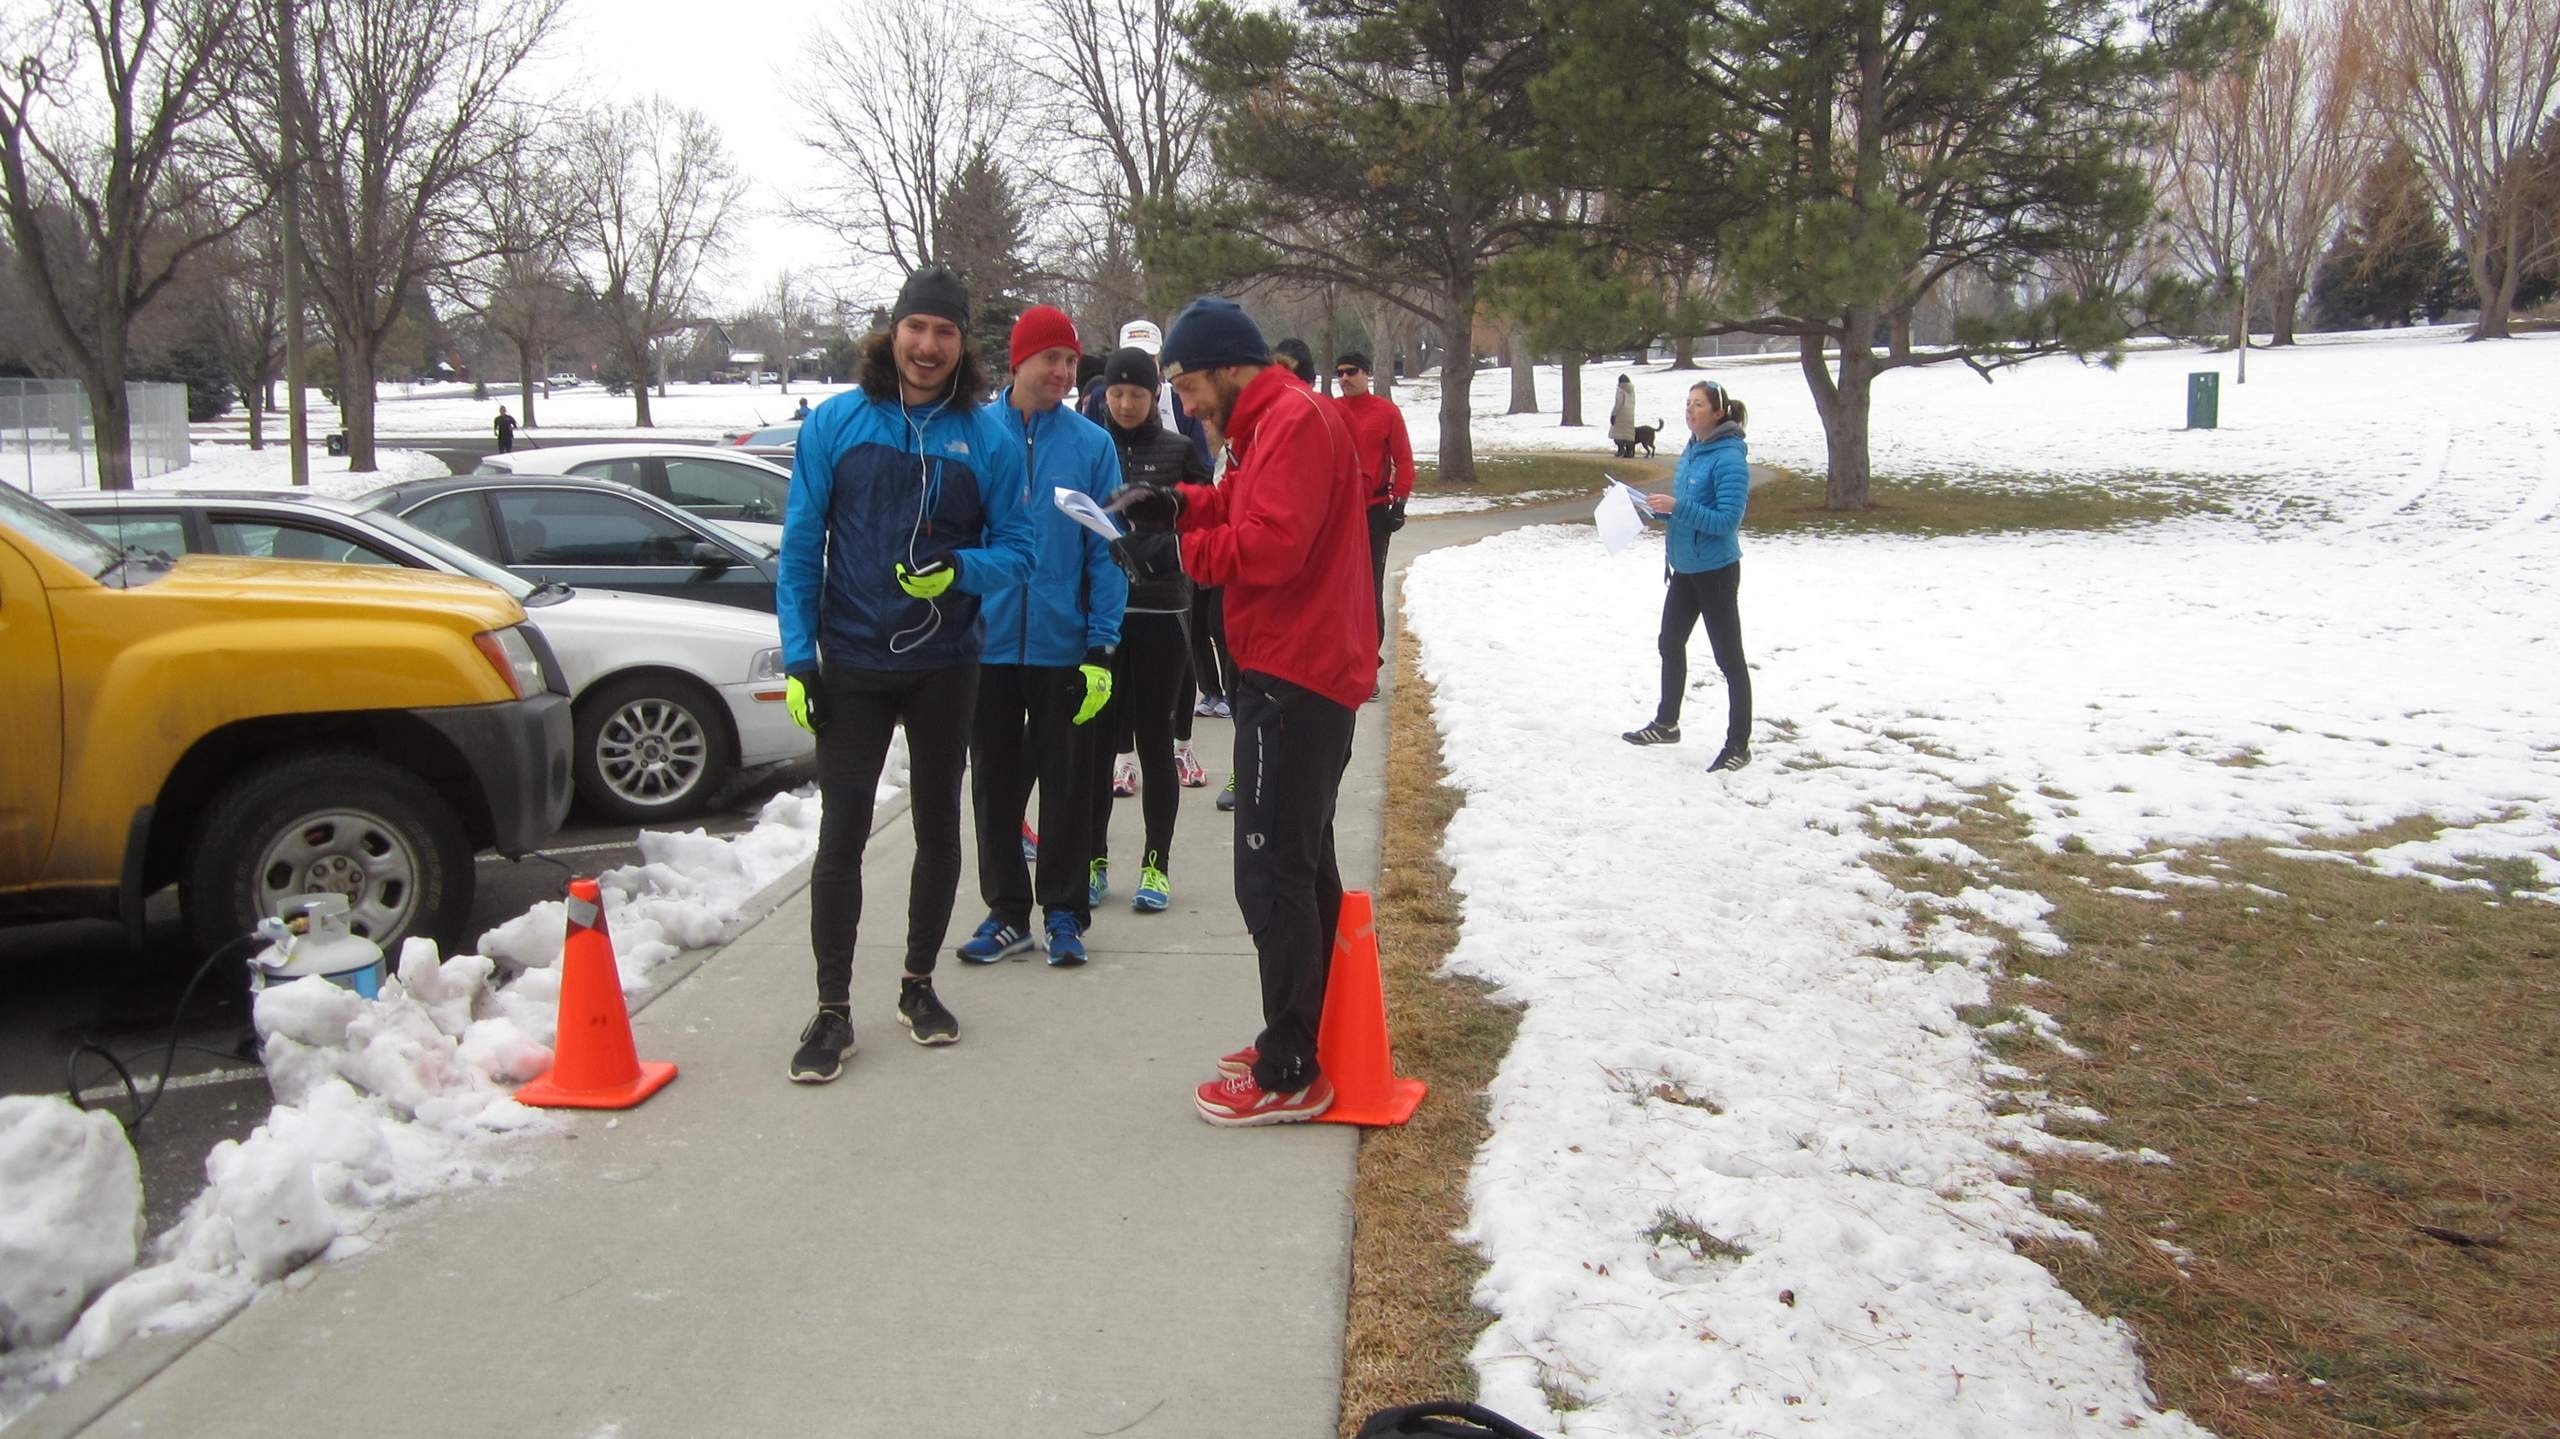 Hector at the start of the Edora Park 8k.